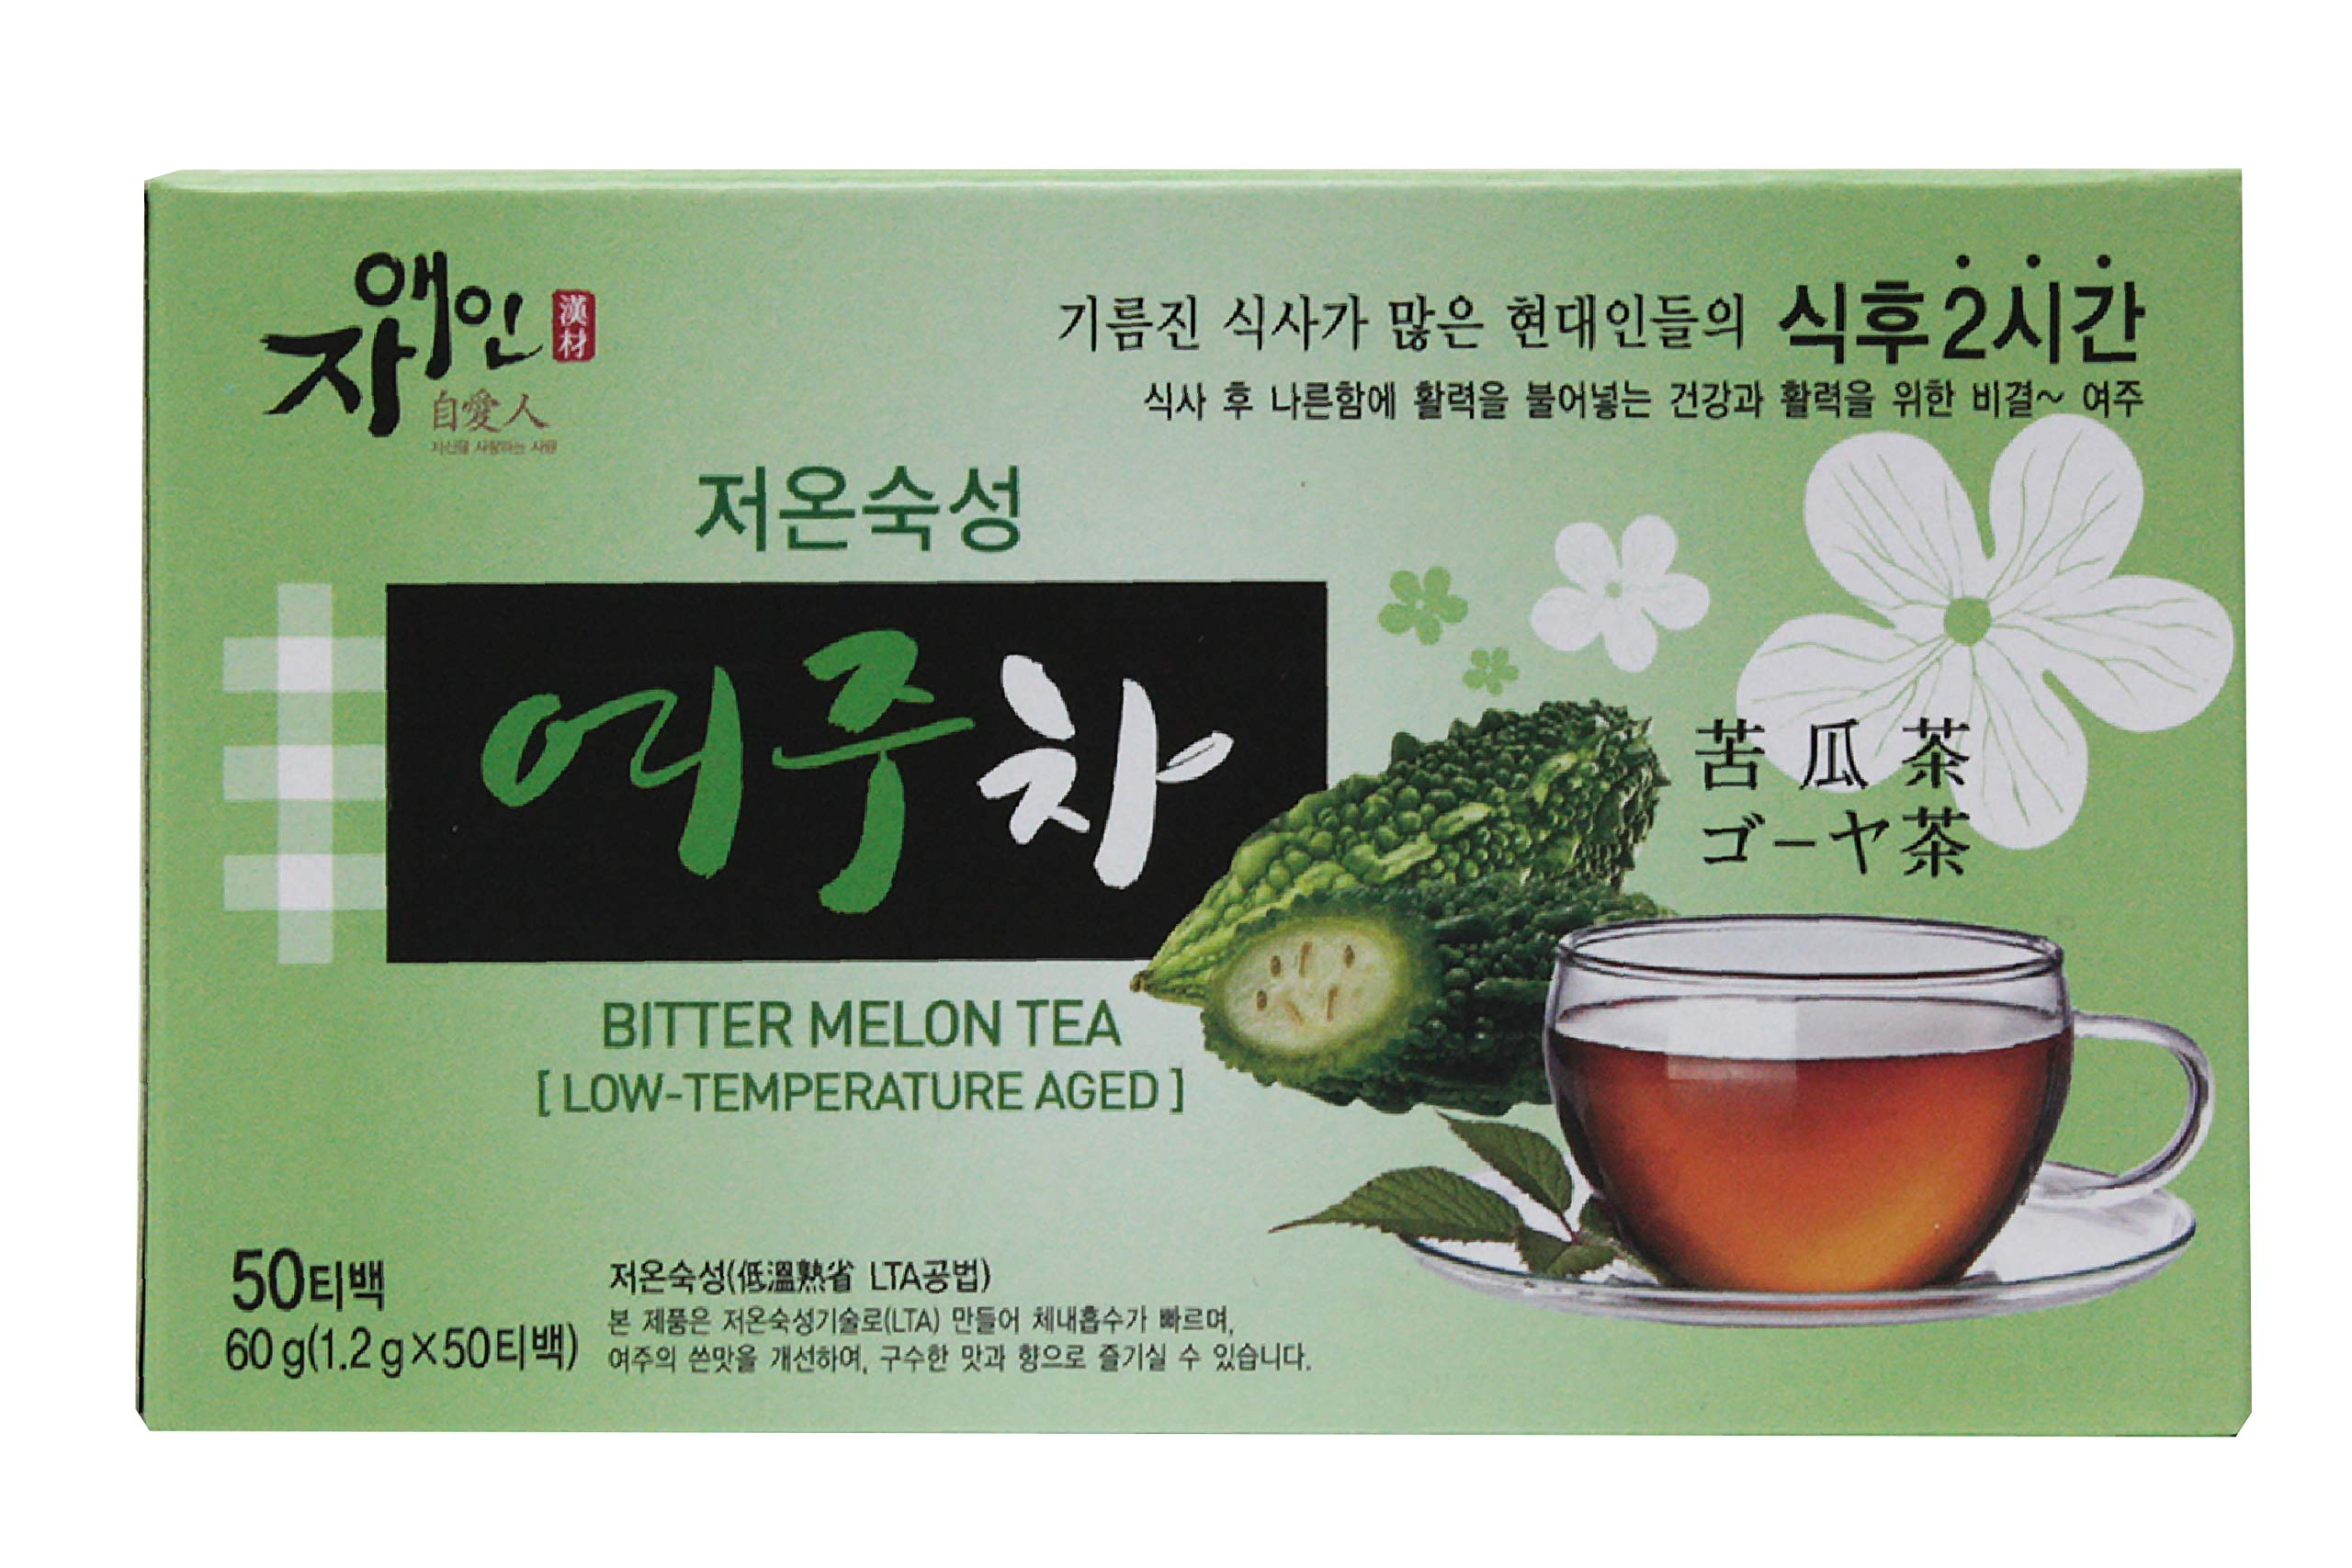 BITTER MELON TEA (Low-Temperature Aged) Gohyah Tea (1.2 g x 50 Tea Bags)_여주차